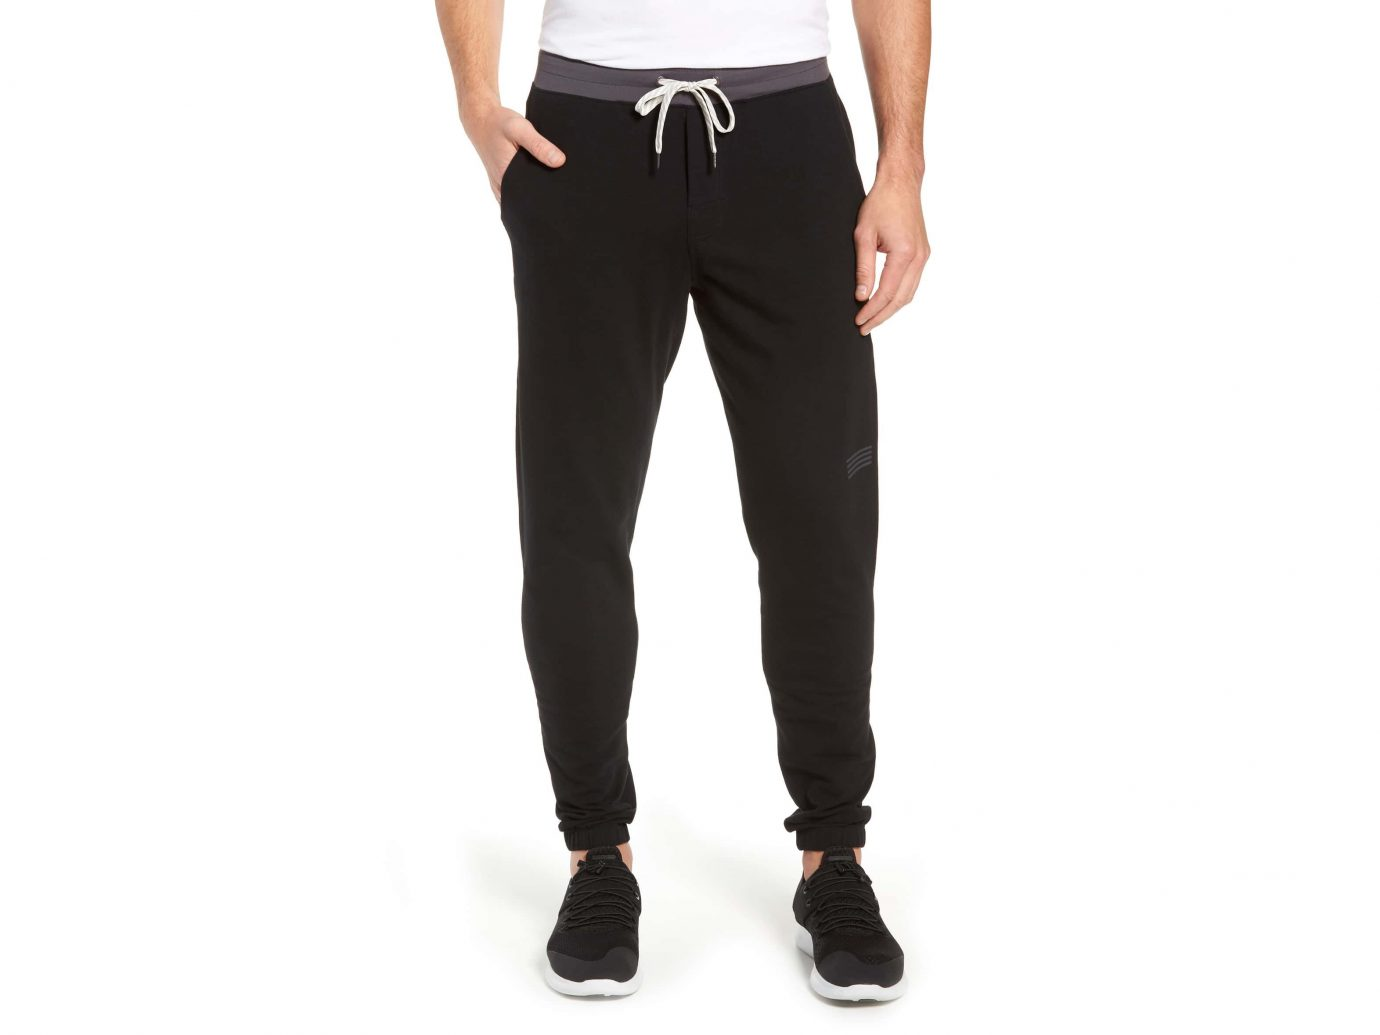 Balboa Slim Fit Knit Jogger Pants